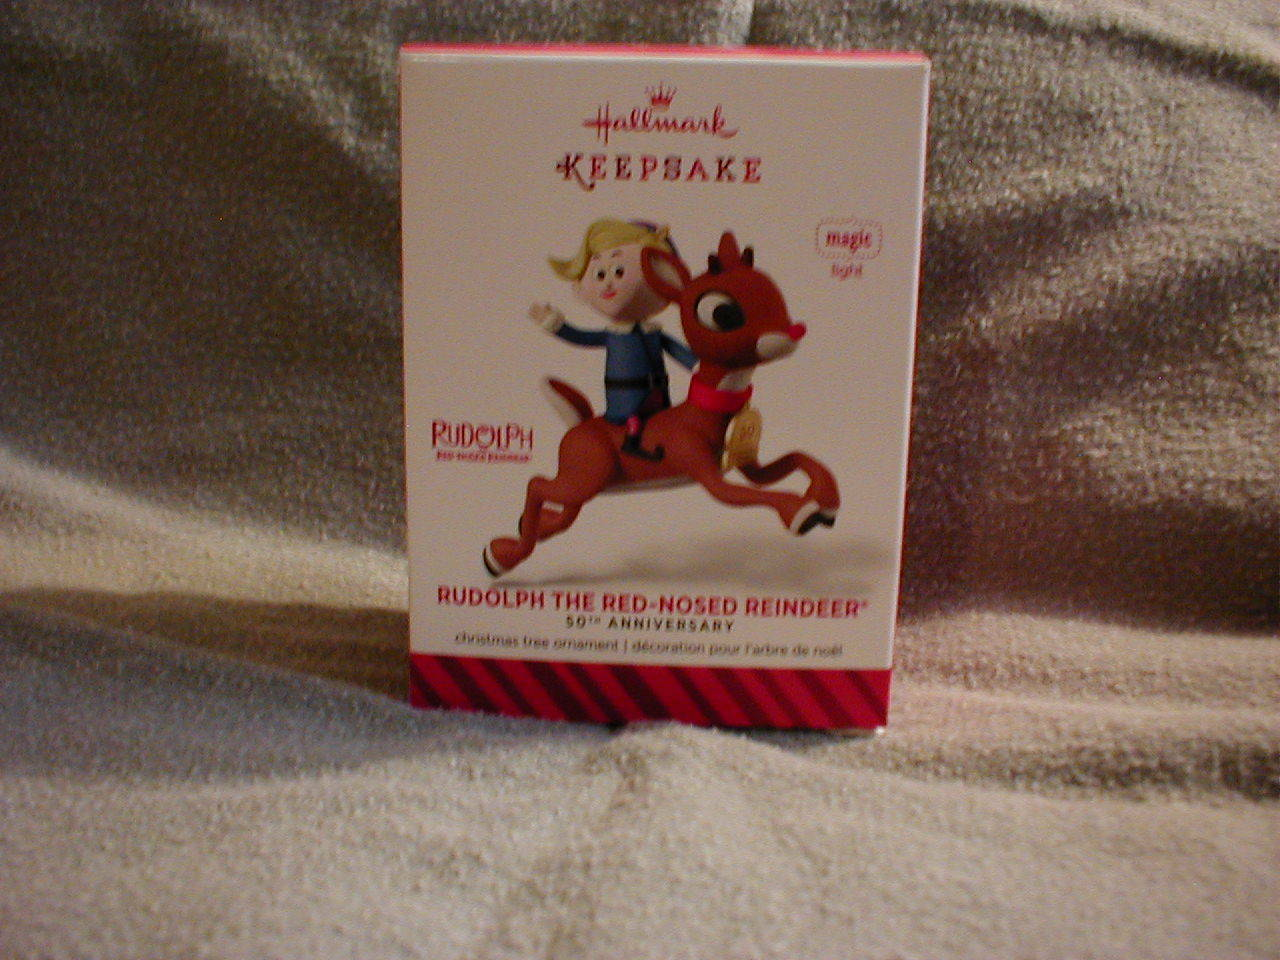 Hallmark - Rudolph The Red Nosed Reindeer - 50th Anniversary Ornament